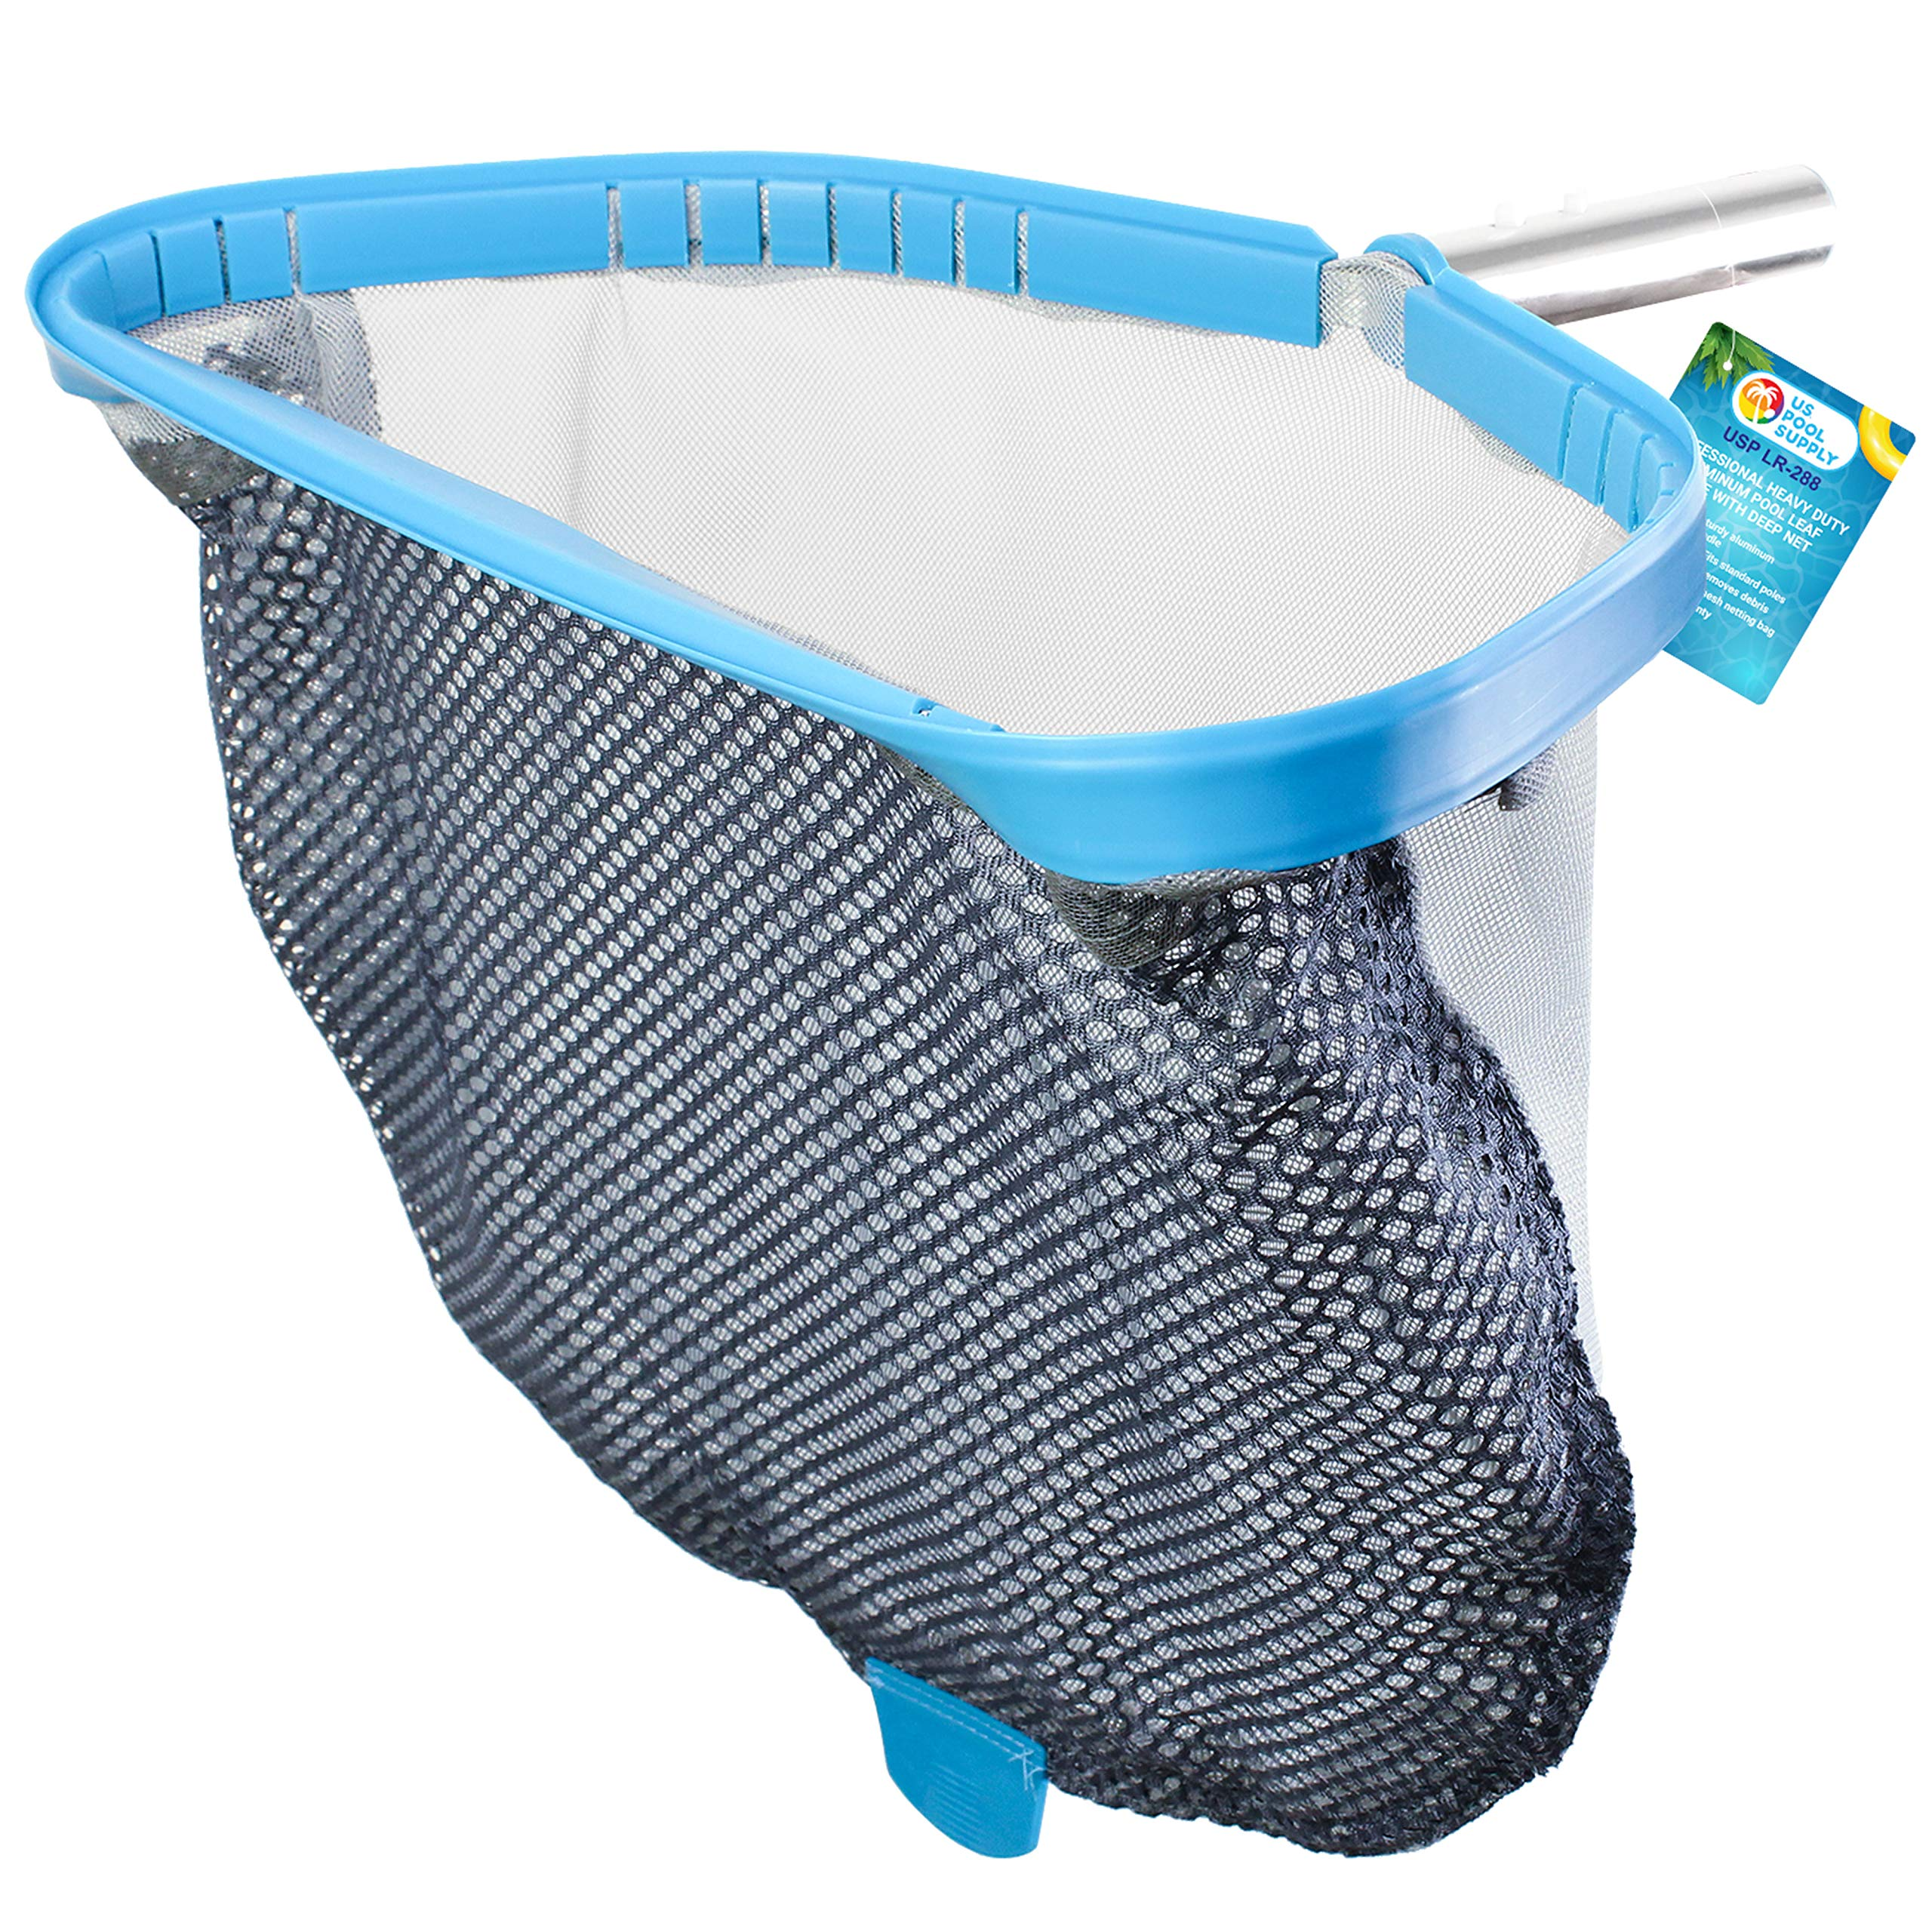 U.S. Pool Supply Professional Heavy Duty 18'' Swimming Pool Leaf Skimmer Rake with Deep Double-Stitched Net Bag - Strong Aluminum Frame for Faster Cleaning & Easier Debris Pickup and Removal by U.S. Pool Supply